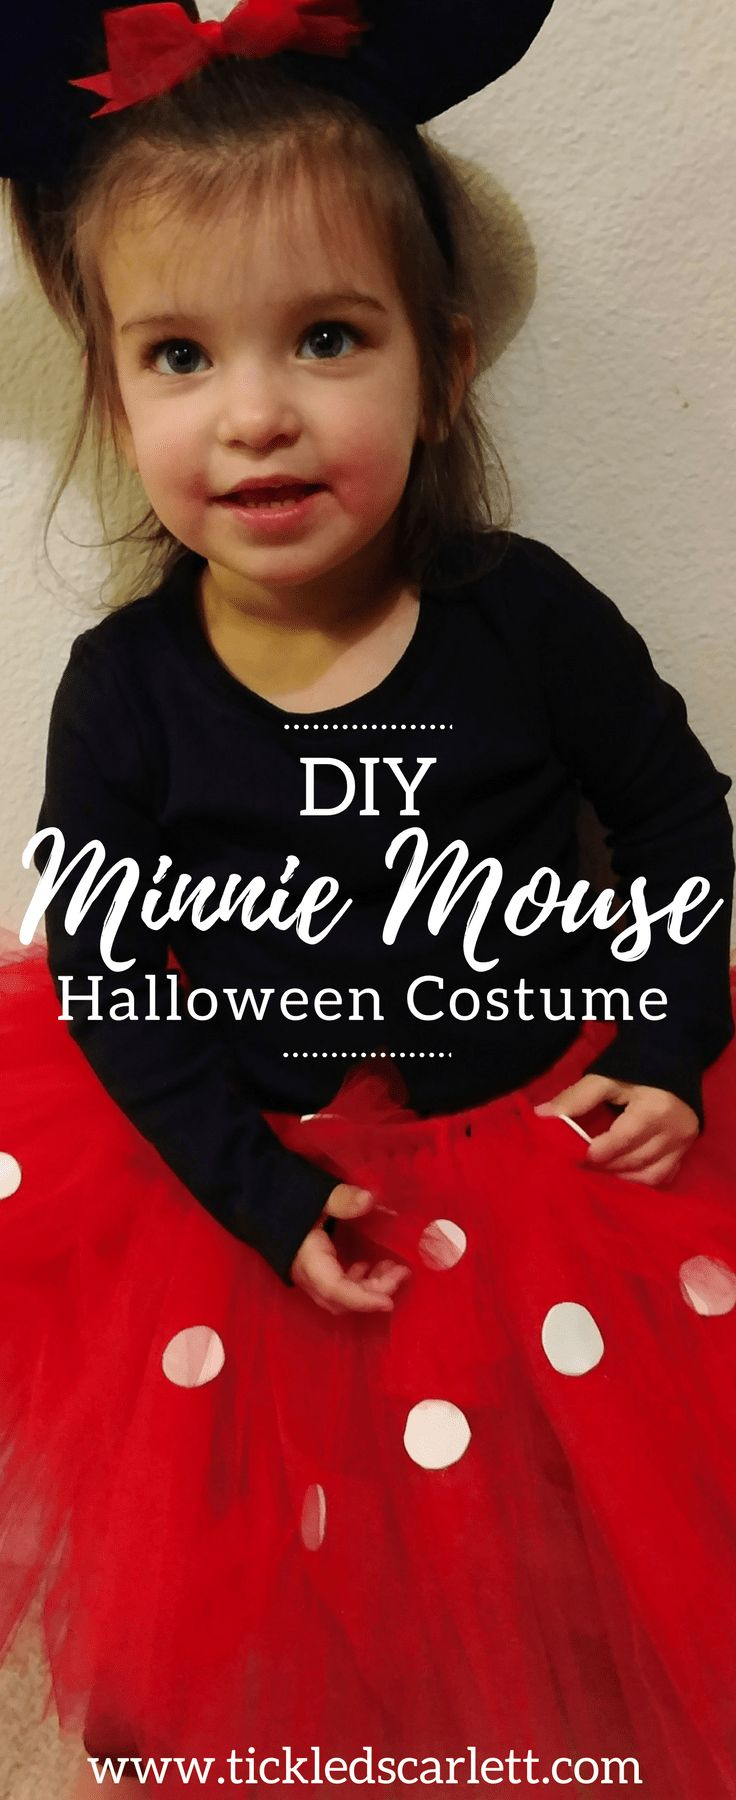 DIY Minnie Mouse Halloween Costume - Toddler Costume Idea from Tickled Scarlett Blog #halloween #diy #costume